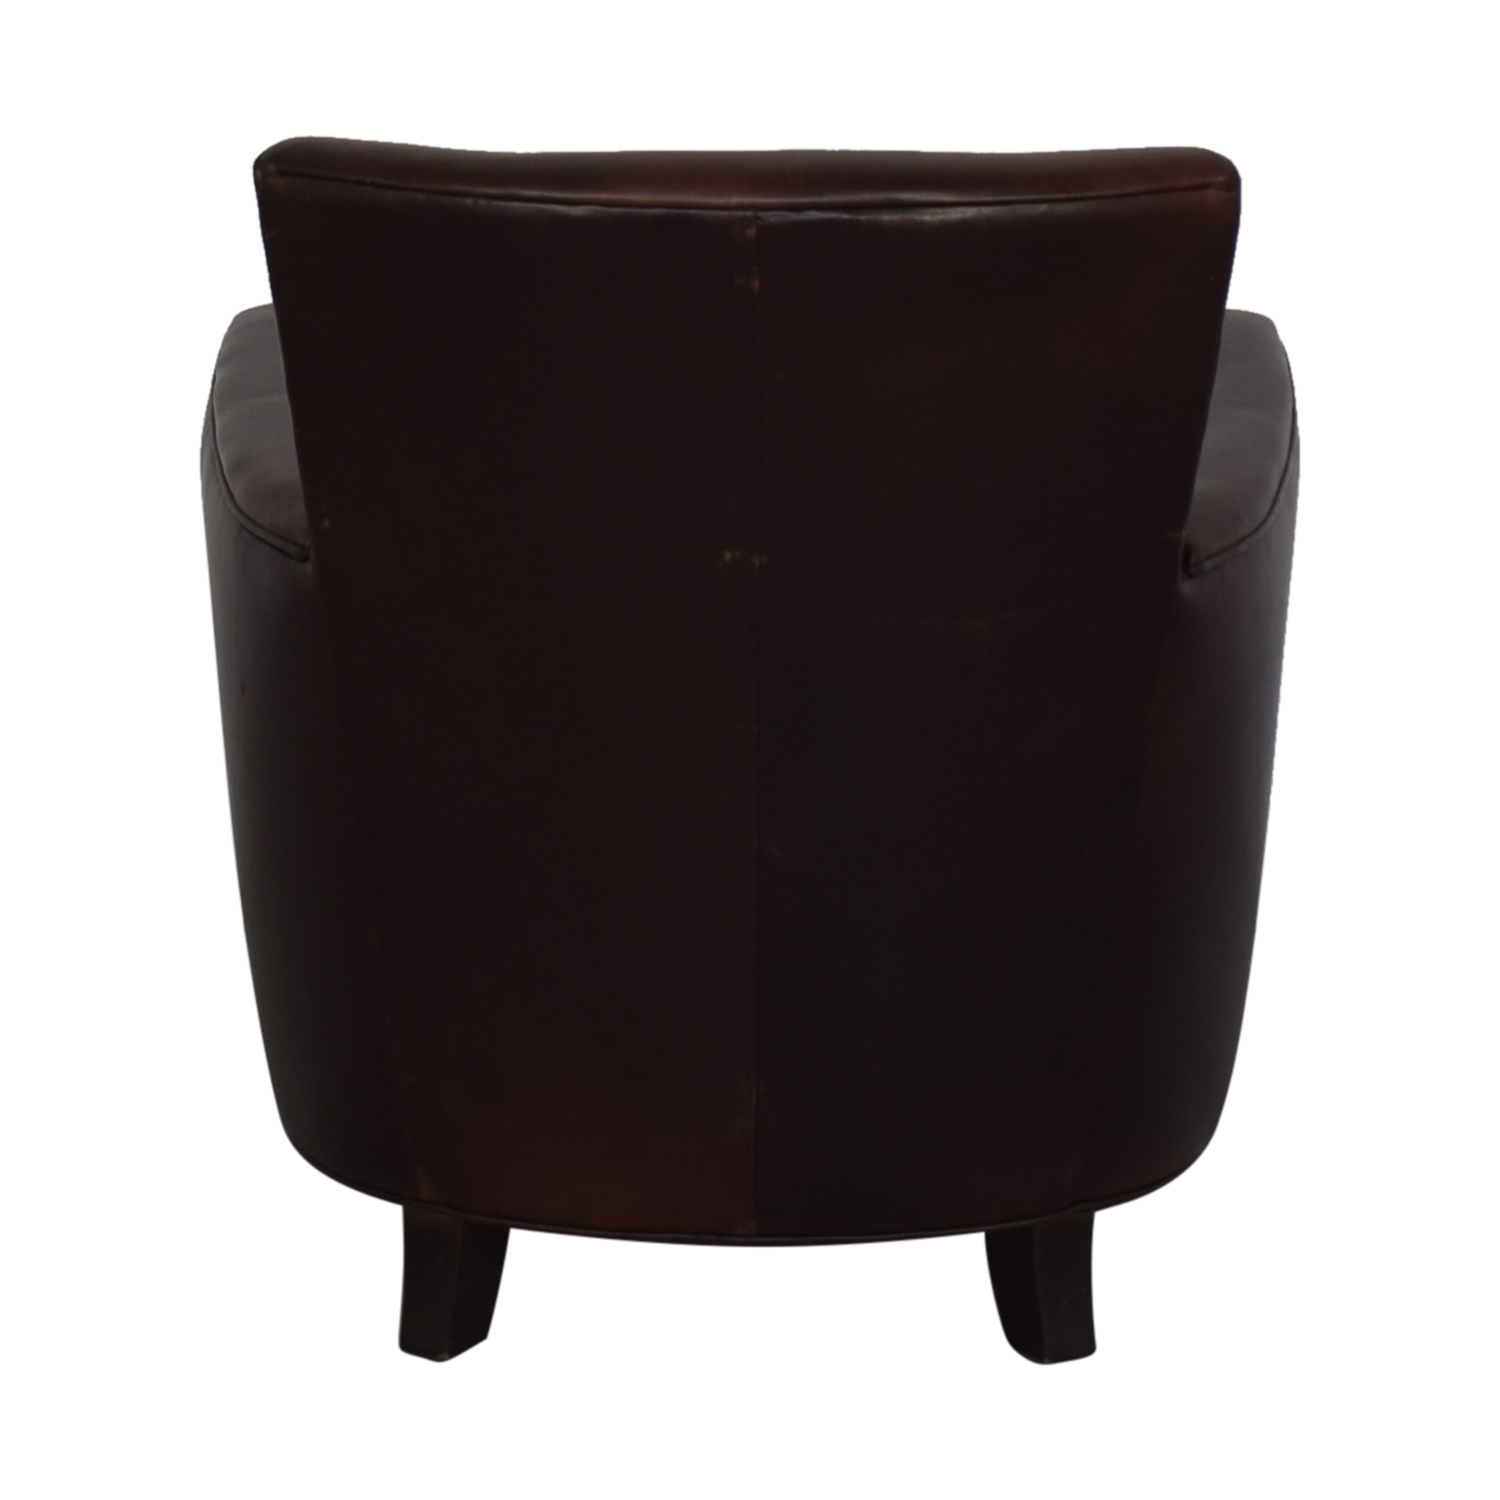 Crate & Barrel Crate & Barrel Briarwood Leather Chair Chairs